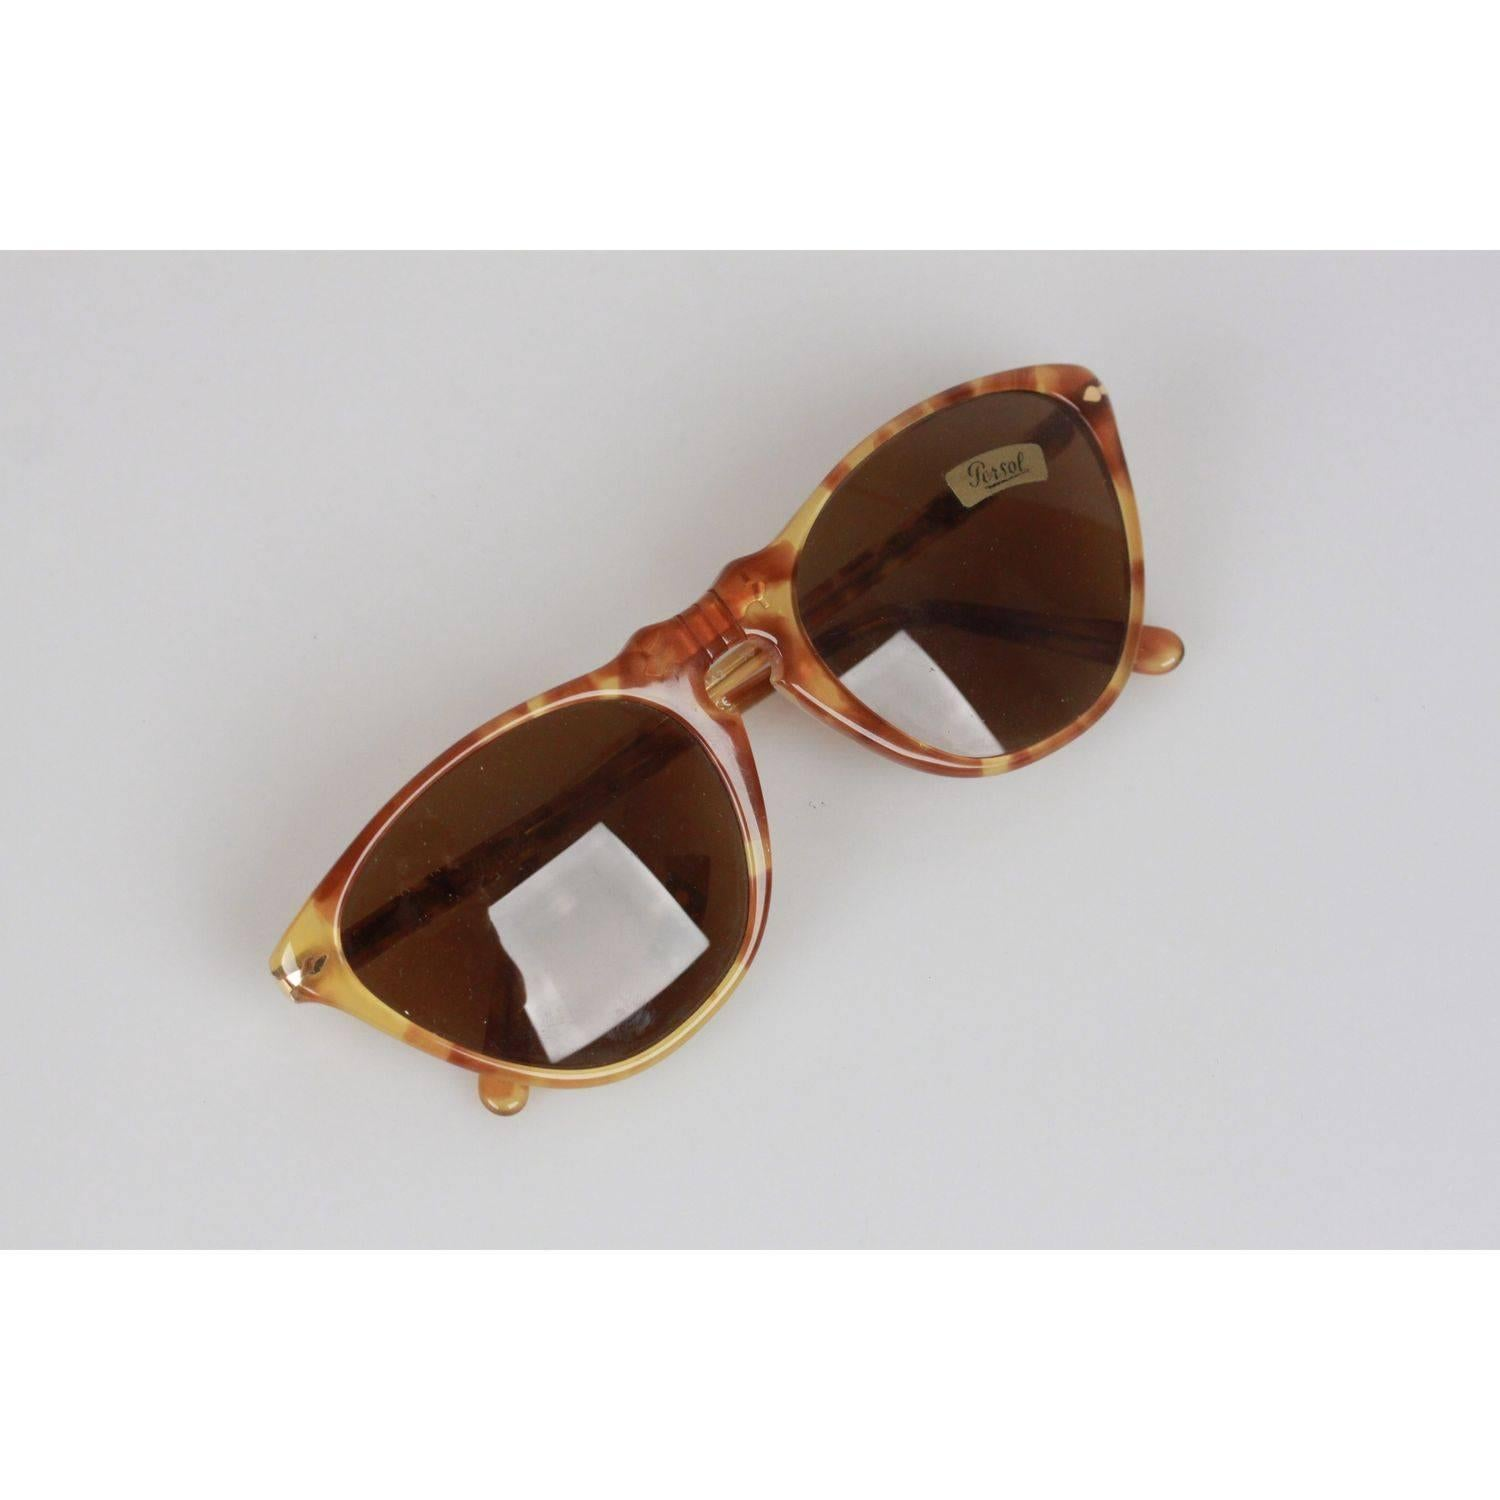 73e1f458ca4e9 Persol Ratti Vintage Tan 48mm Sunglasses 201 Cat Eye Eyeglasses For Sale at  1stdibs